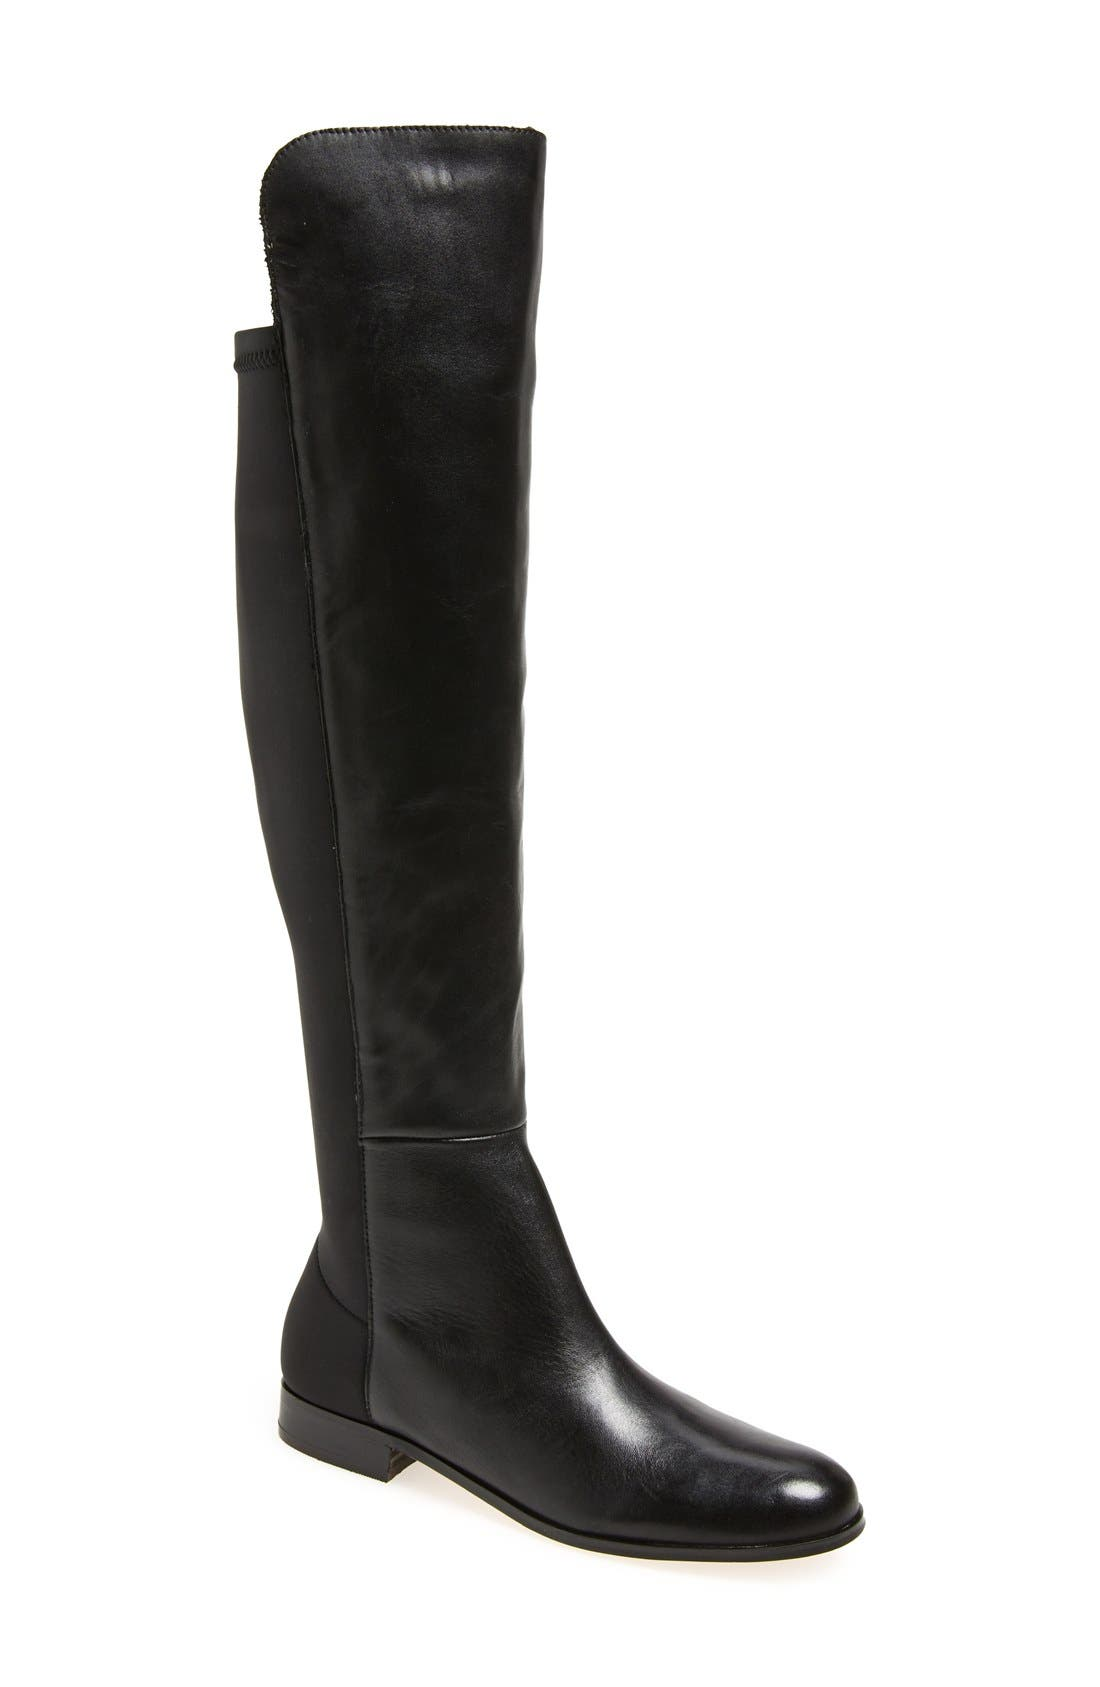 'Laura' Over the Knee Boot,                             Main thumbnail 1, color,                             001